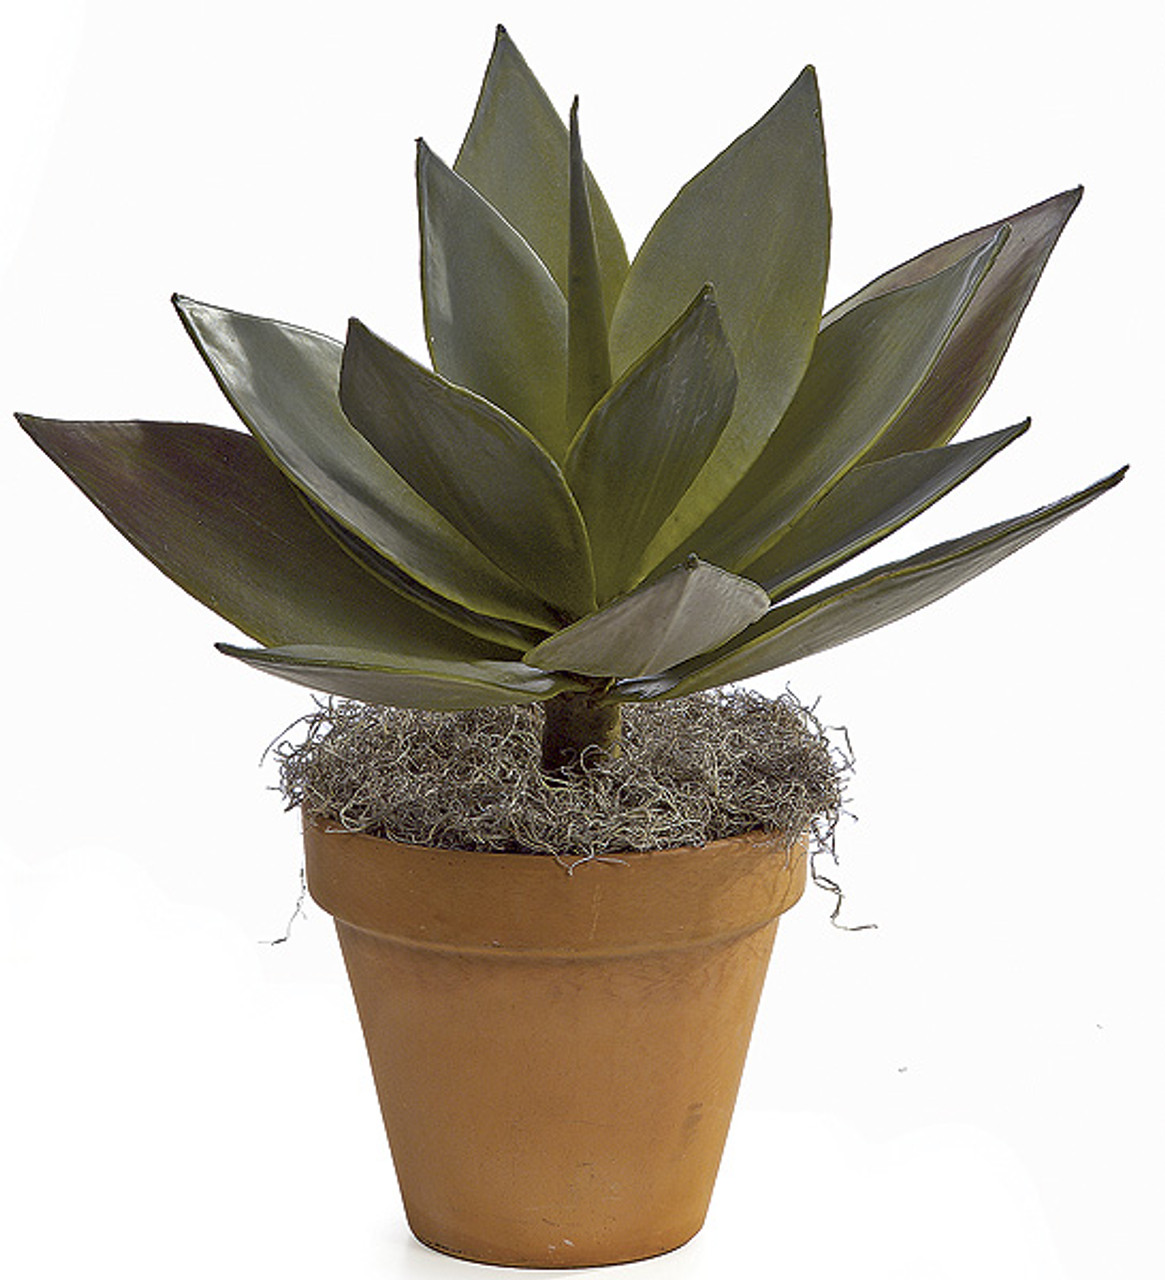 Lifelike artificial agave plant wholesale 23 agave plant in stock decorative 23 agave plant a classic favorite for business and office decor shop all commercial wholesale faux plants decor and more mightylinksfo